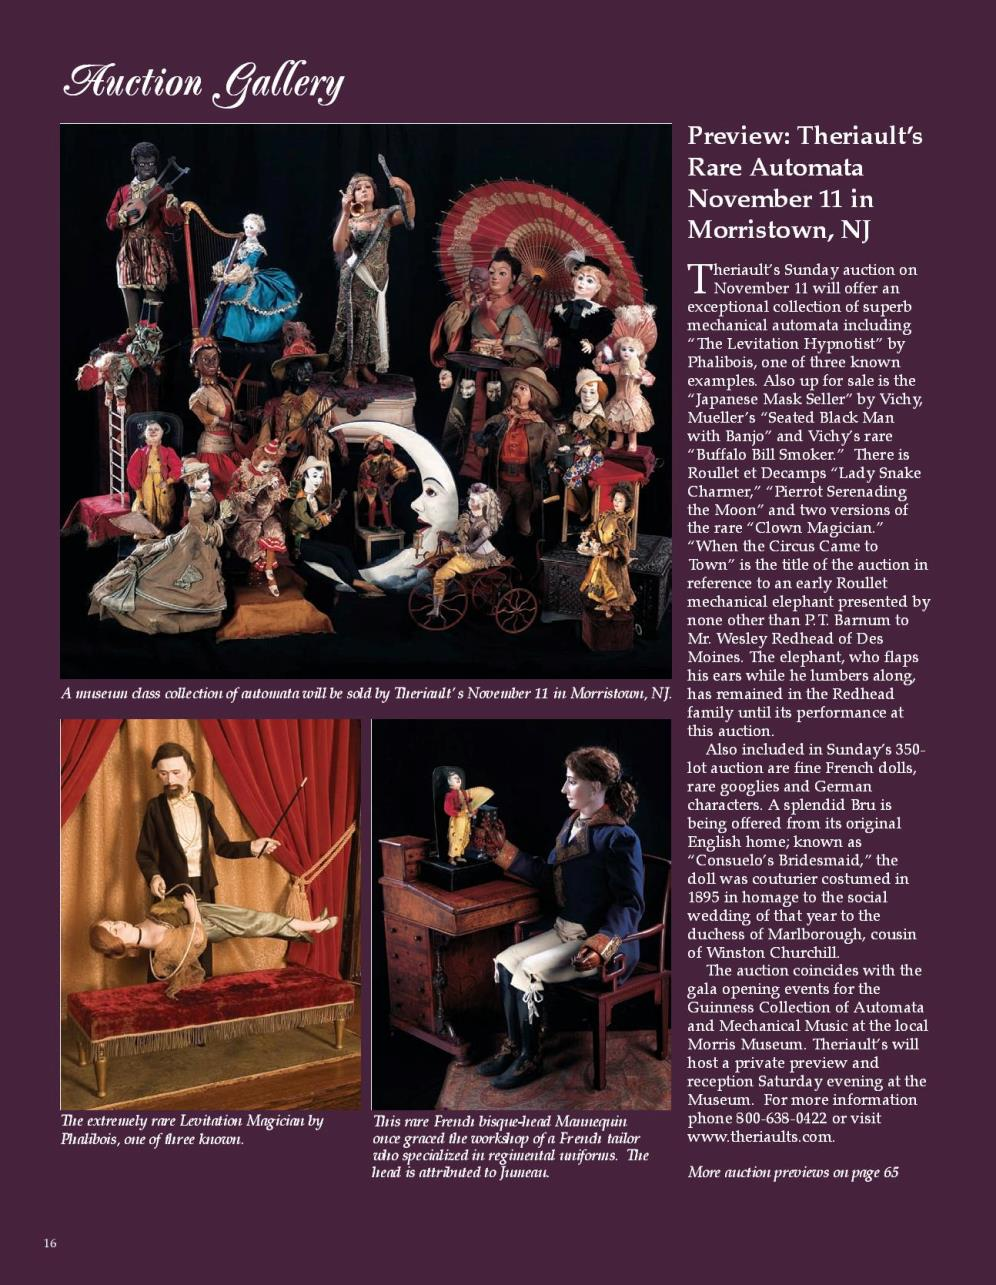 Preview: Theriault's Rare Automata November 11 in Morristown, NJ